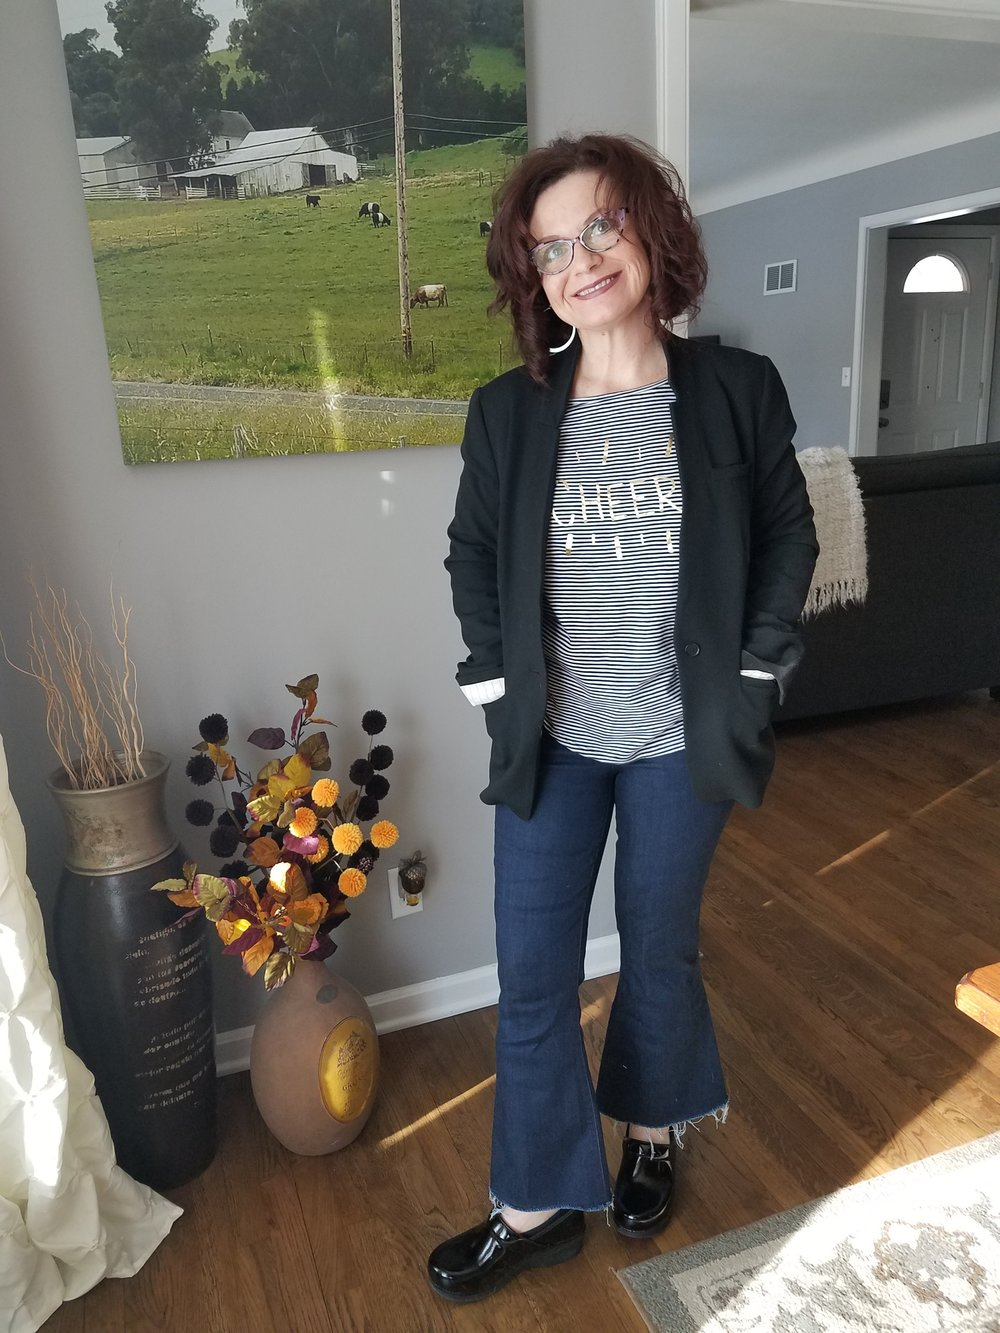 It was a warm January day so I broke out one of my favorite jean/pant silhouettes - cropped flare - and paired them with a simple black blazer and graphic tshirt.  On my feet?  My Dansko clogs of course.